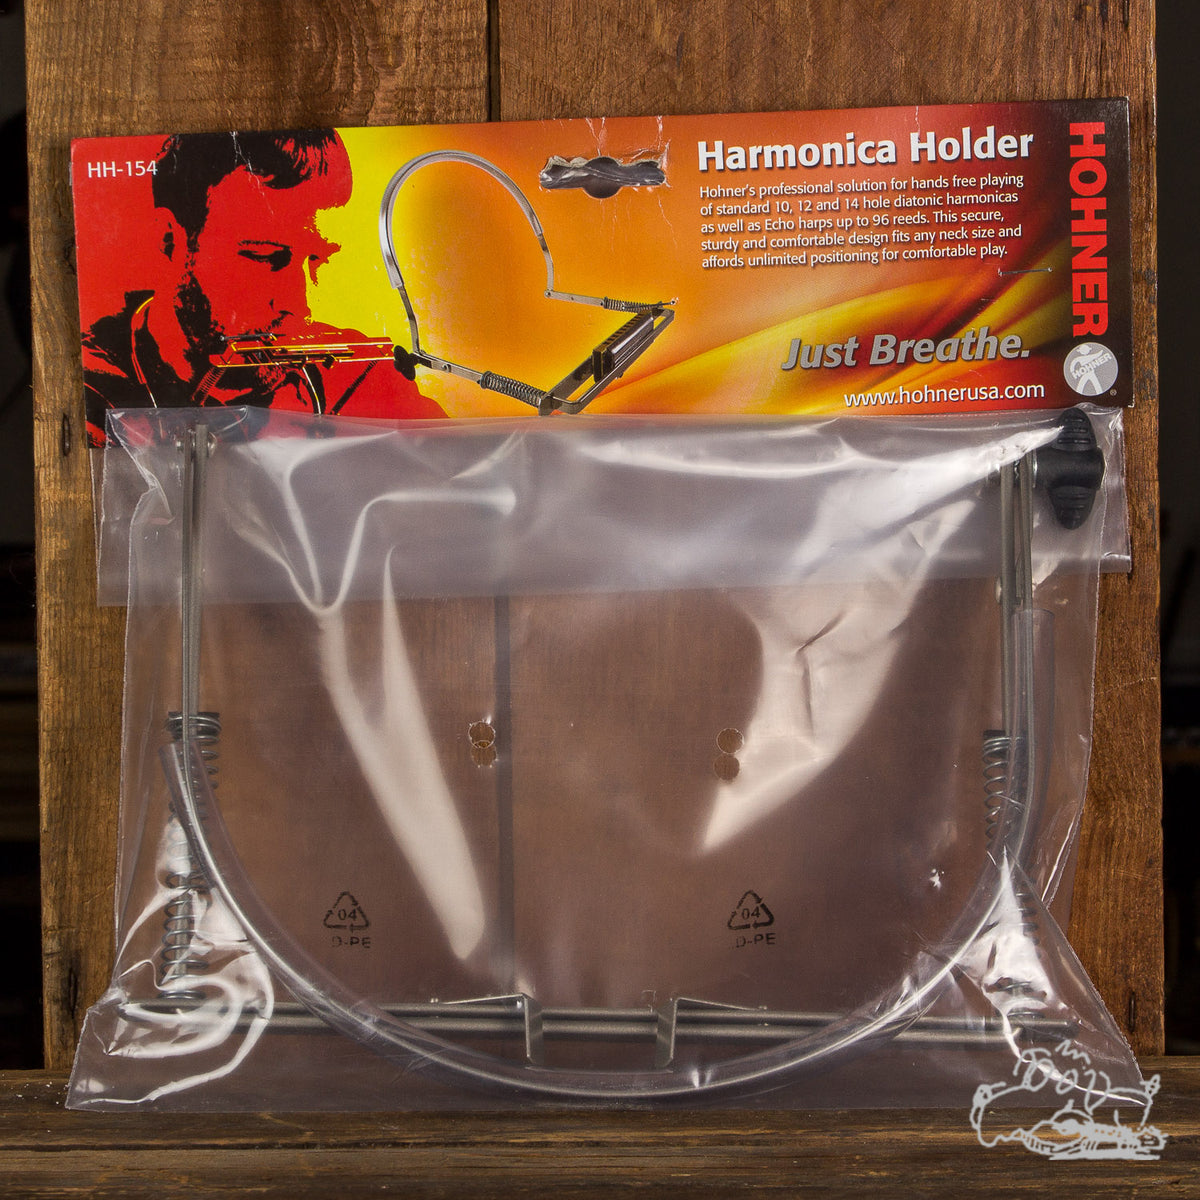 Hohner Harmonica Holder